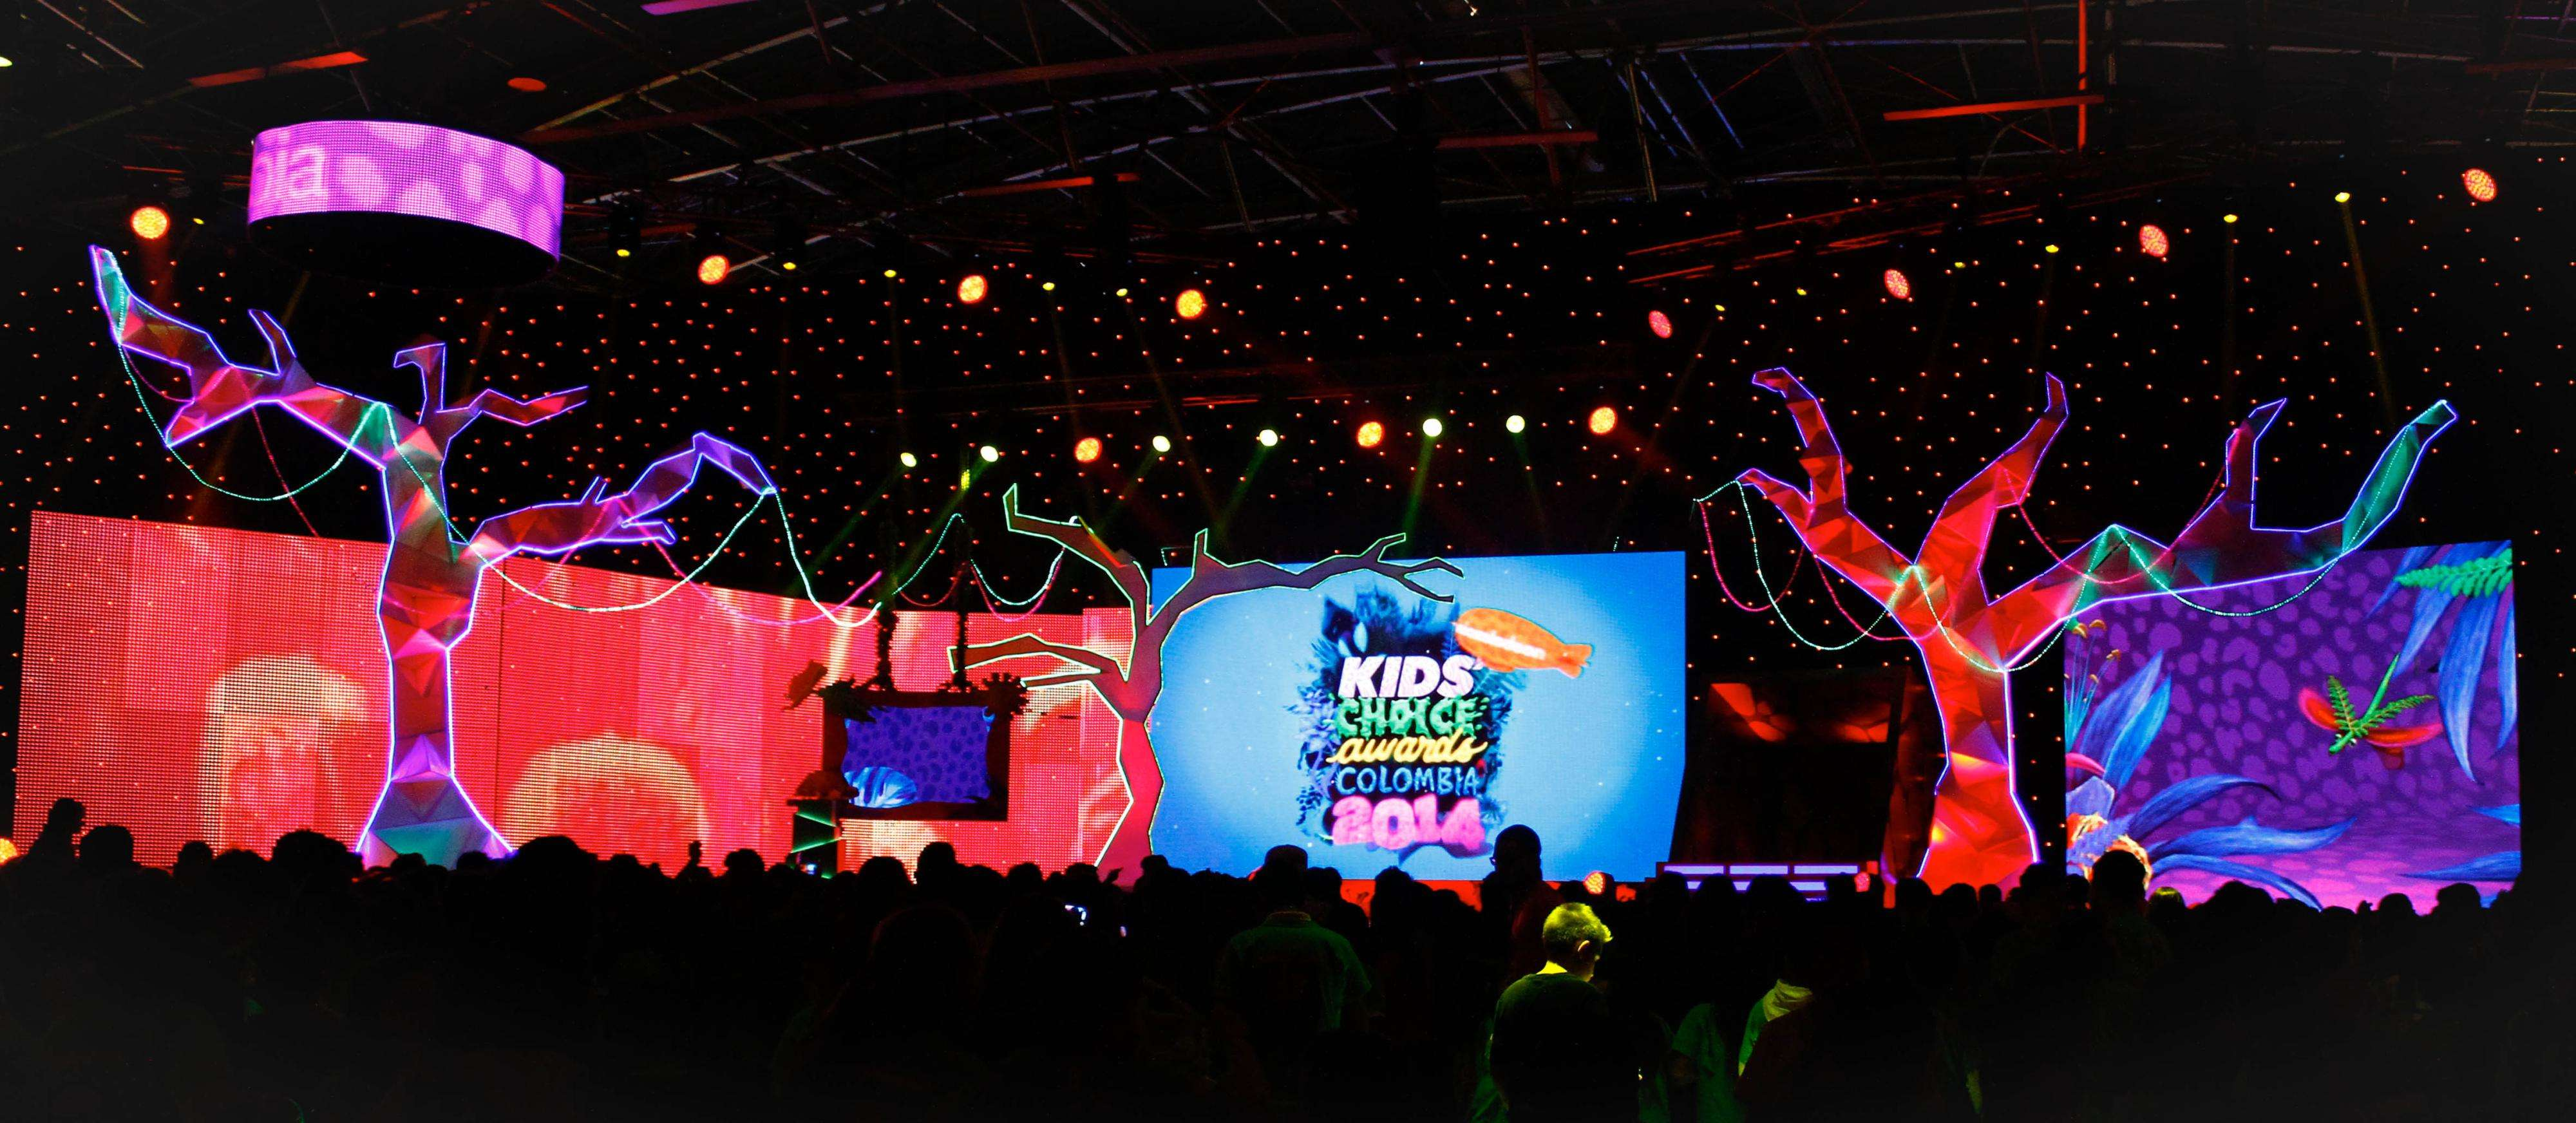 El público disfrutó por primera vez en Colombia los Premios Kids' Choice Awards. Foto: kids Choice Awars Colombia 2014/Prensa